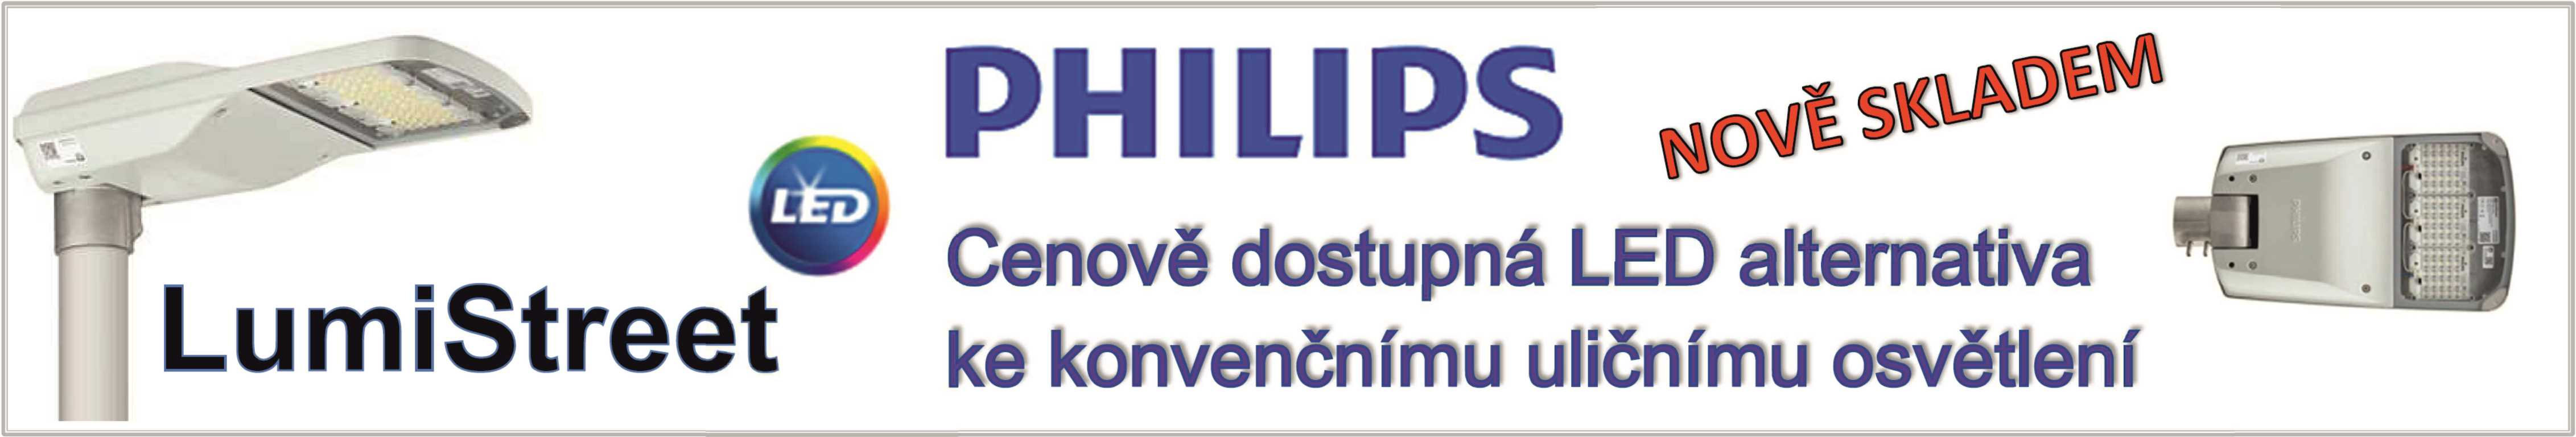 philips_lumistreet